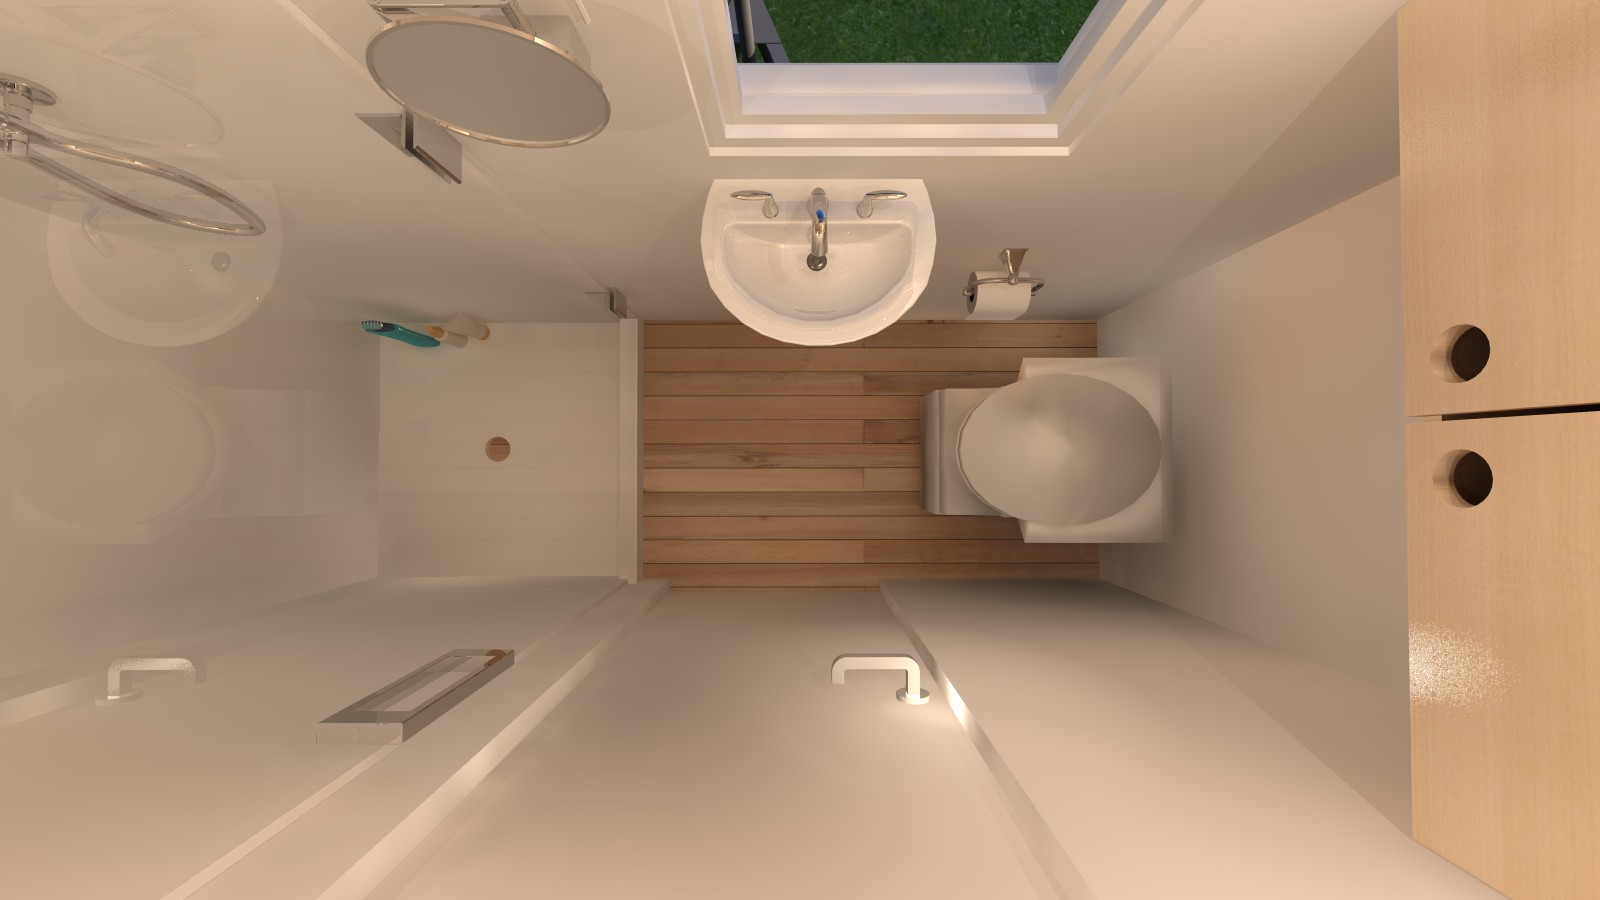 Manchester 14 tiny house plans for Tiny bathroom shower ideas